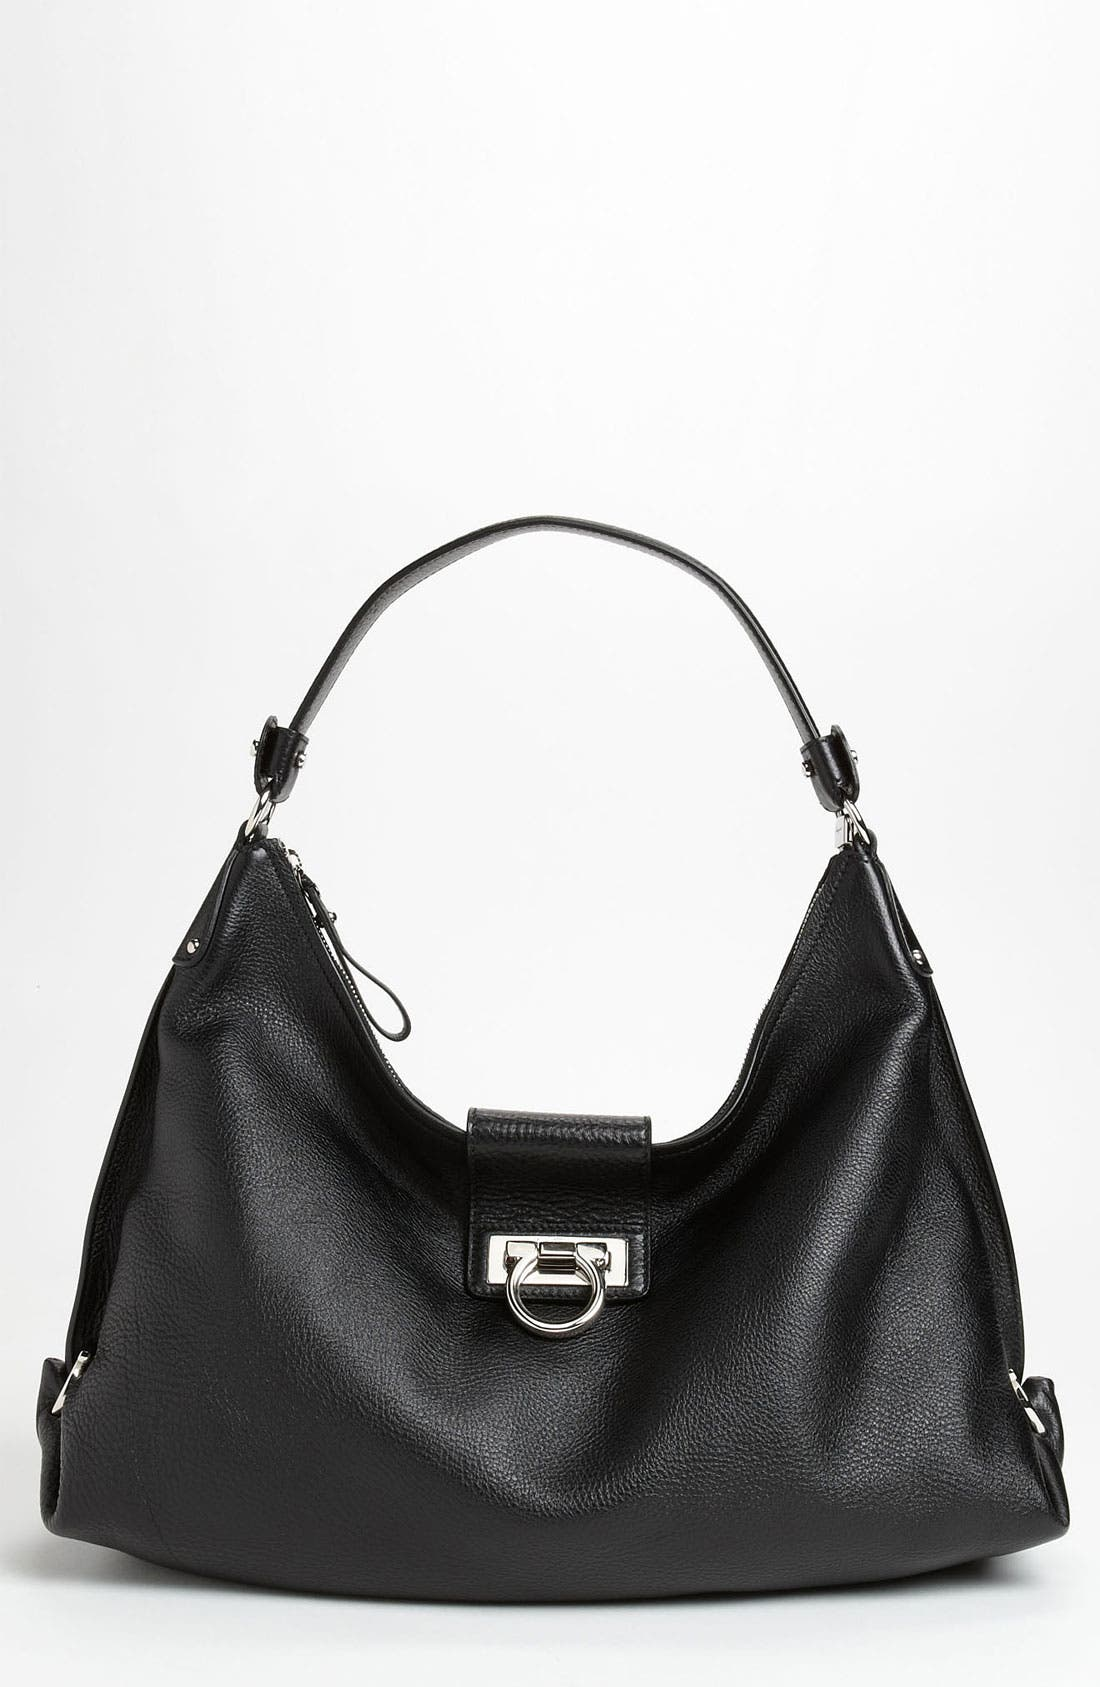 Main Image - Salvatore Ferragamo 'New Fanisa' Leather Hobo